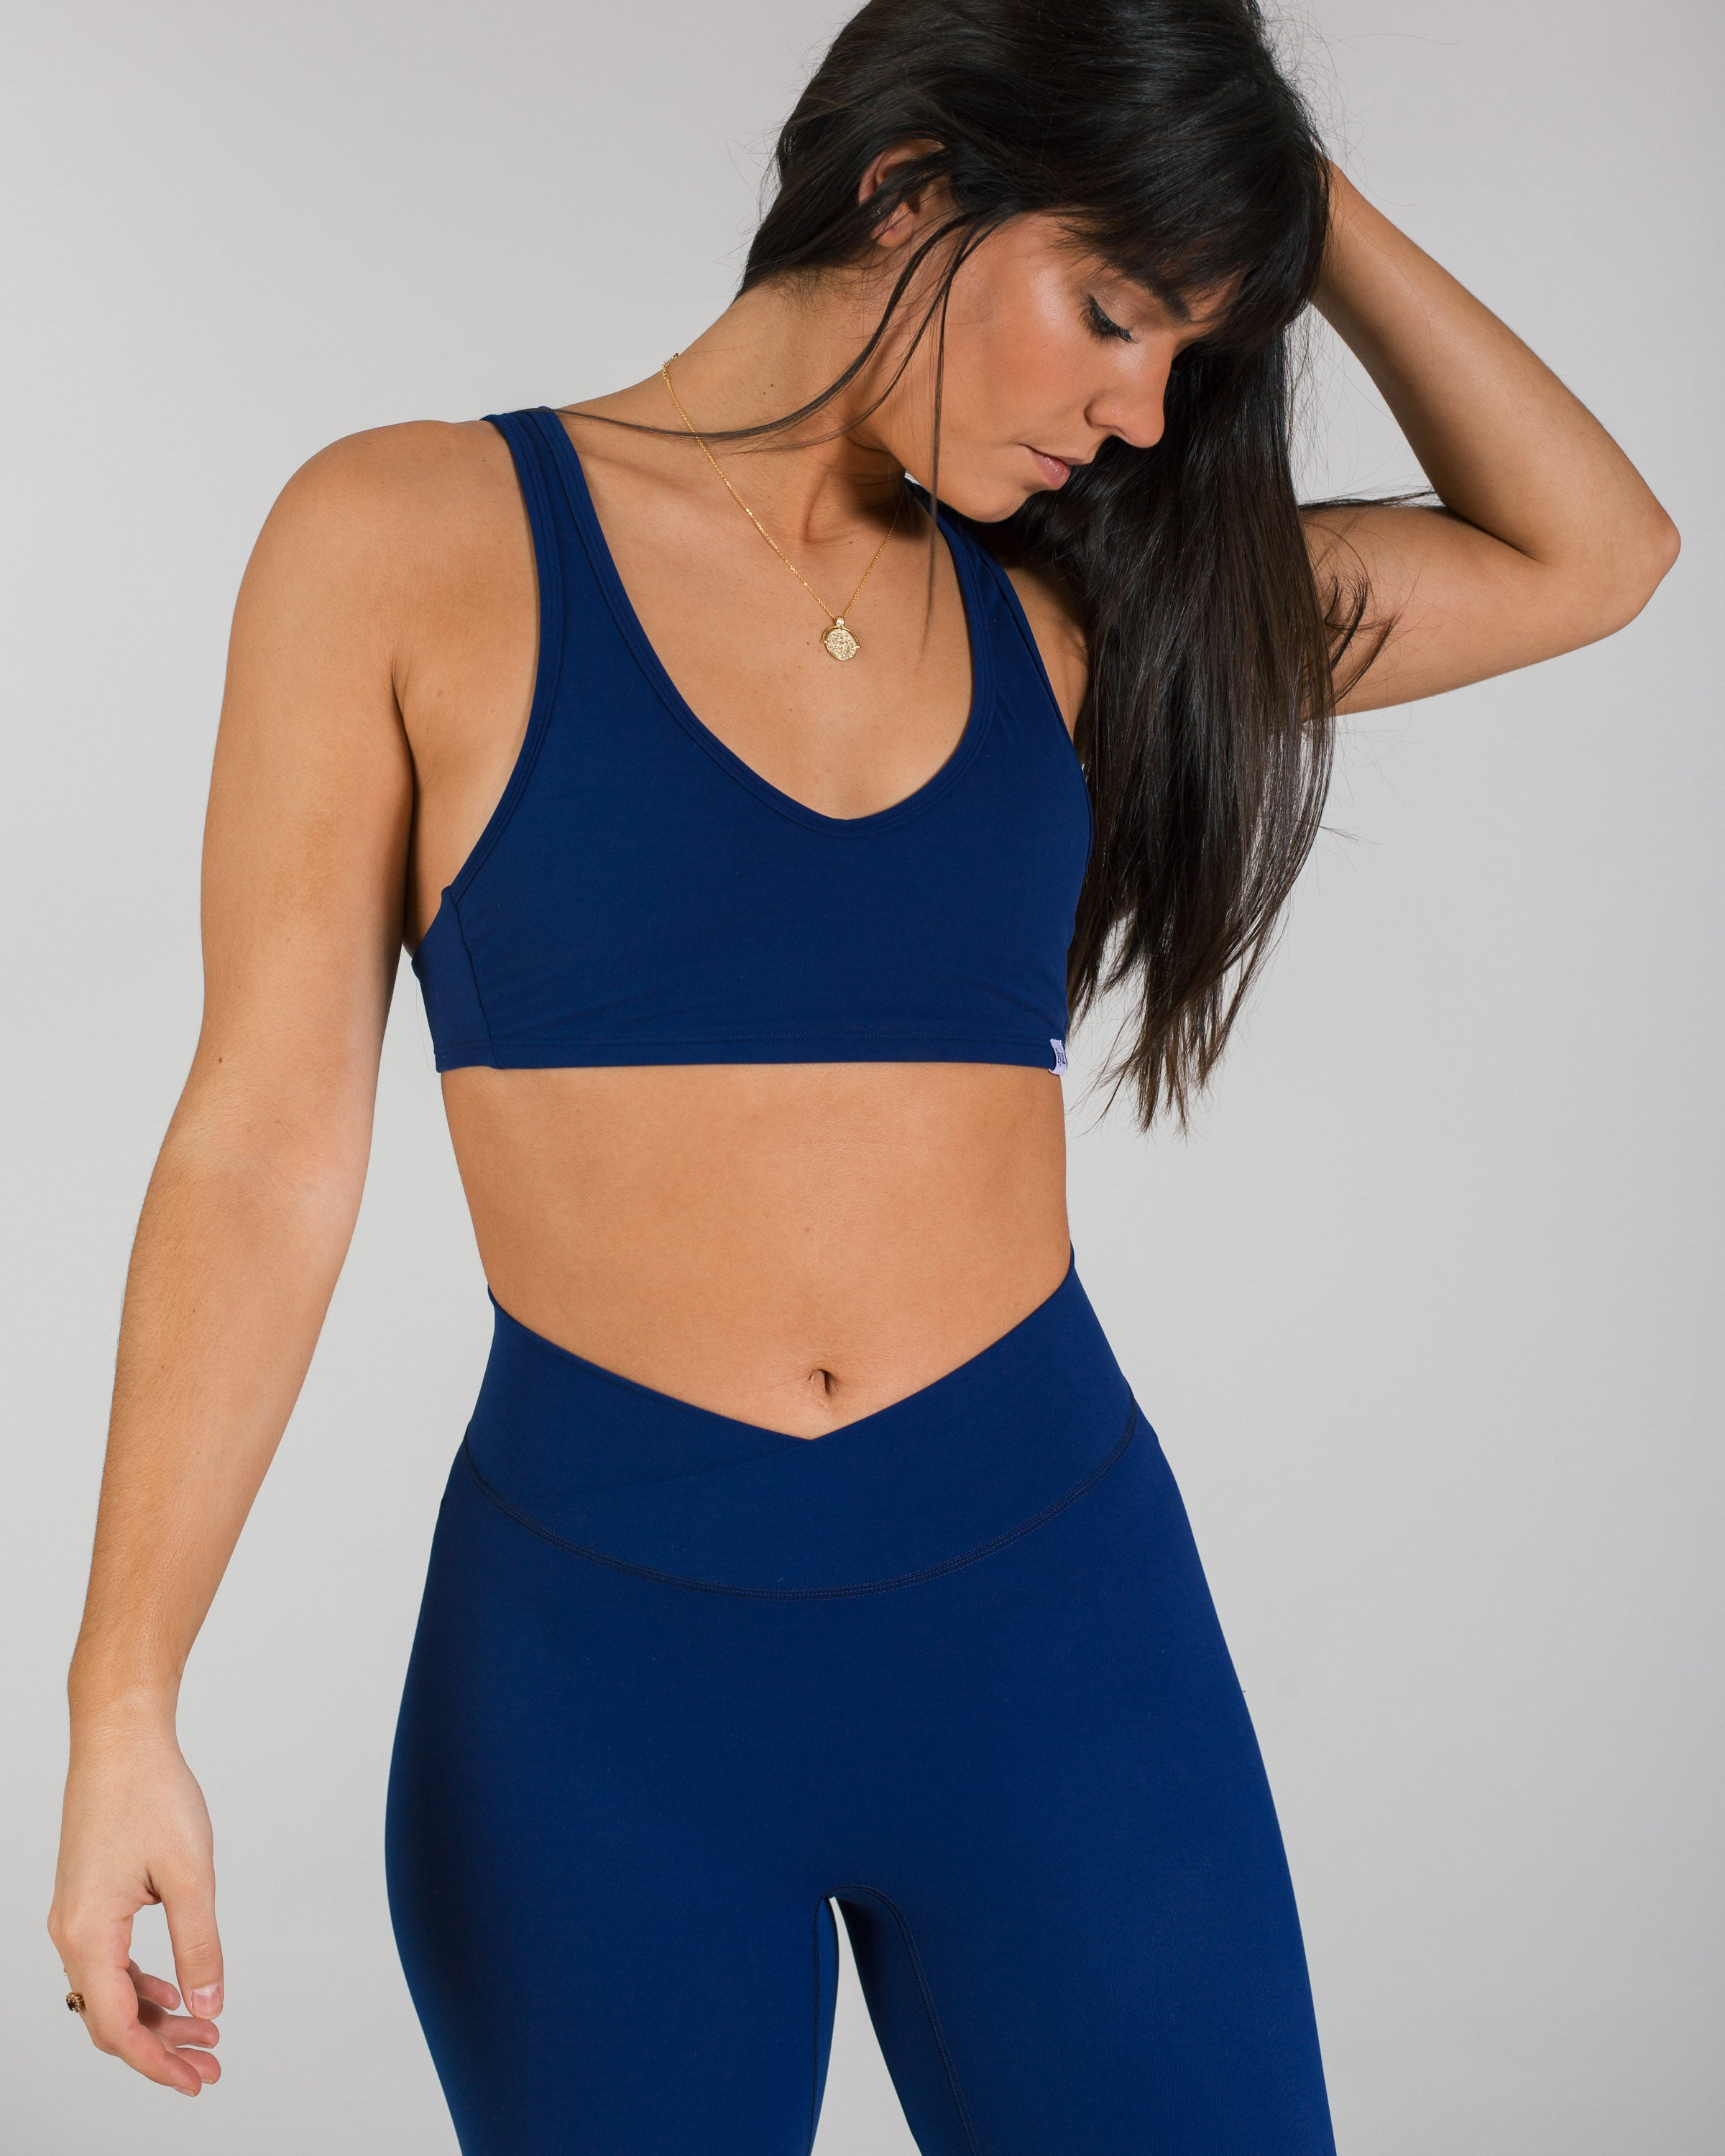 Asana Sports-Bra - Royal Blue